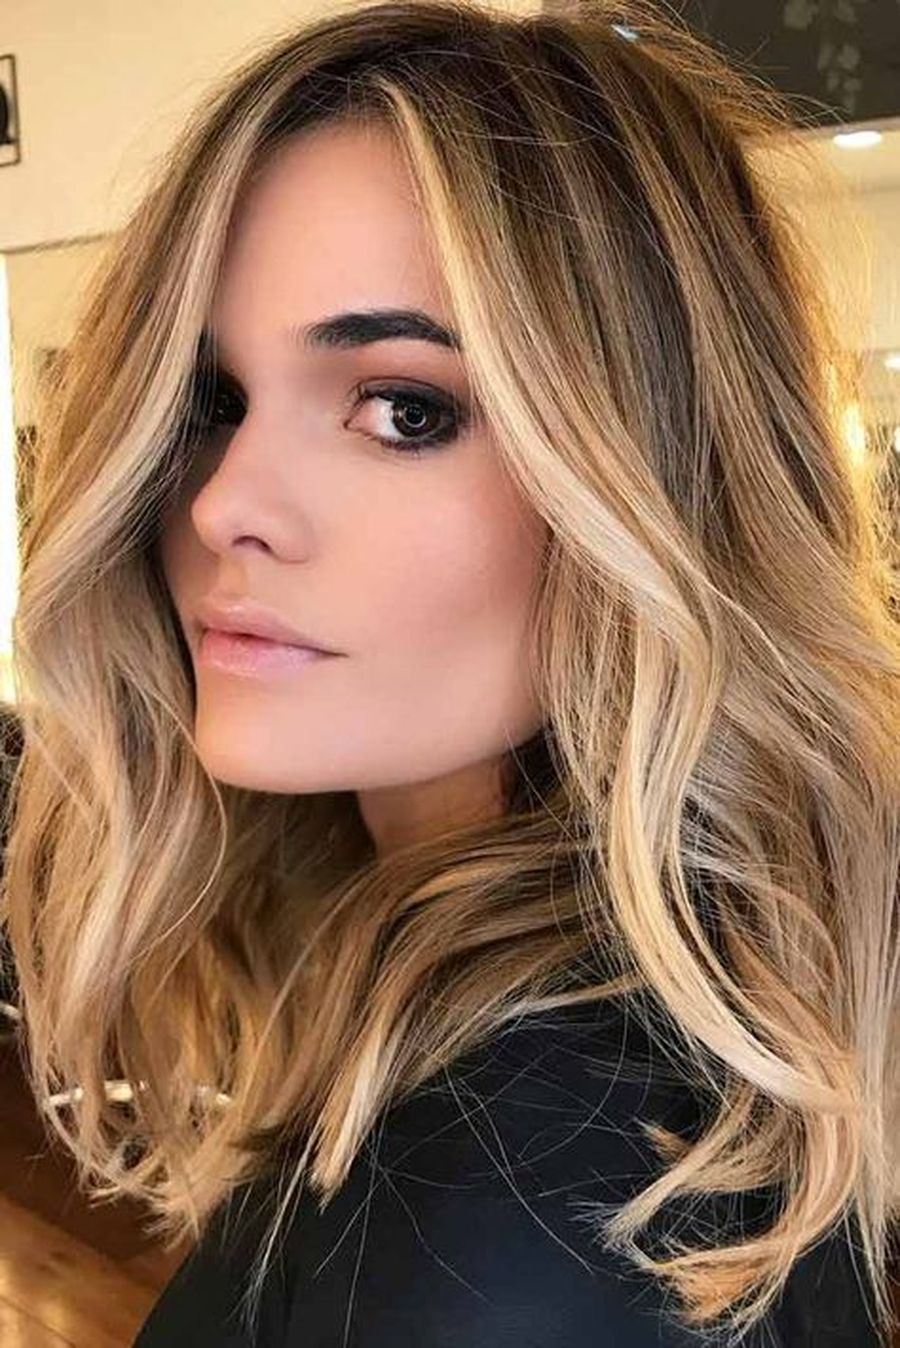 Inspiring haircolor style for winter and fall 23